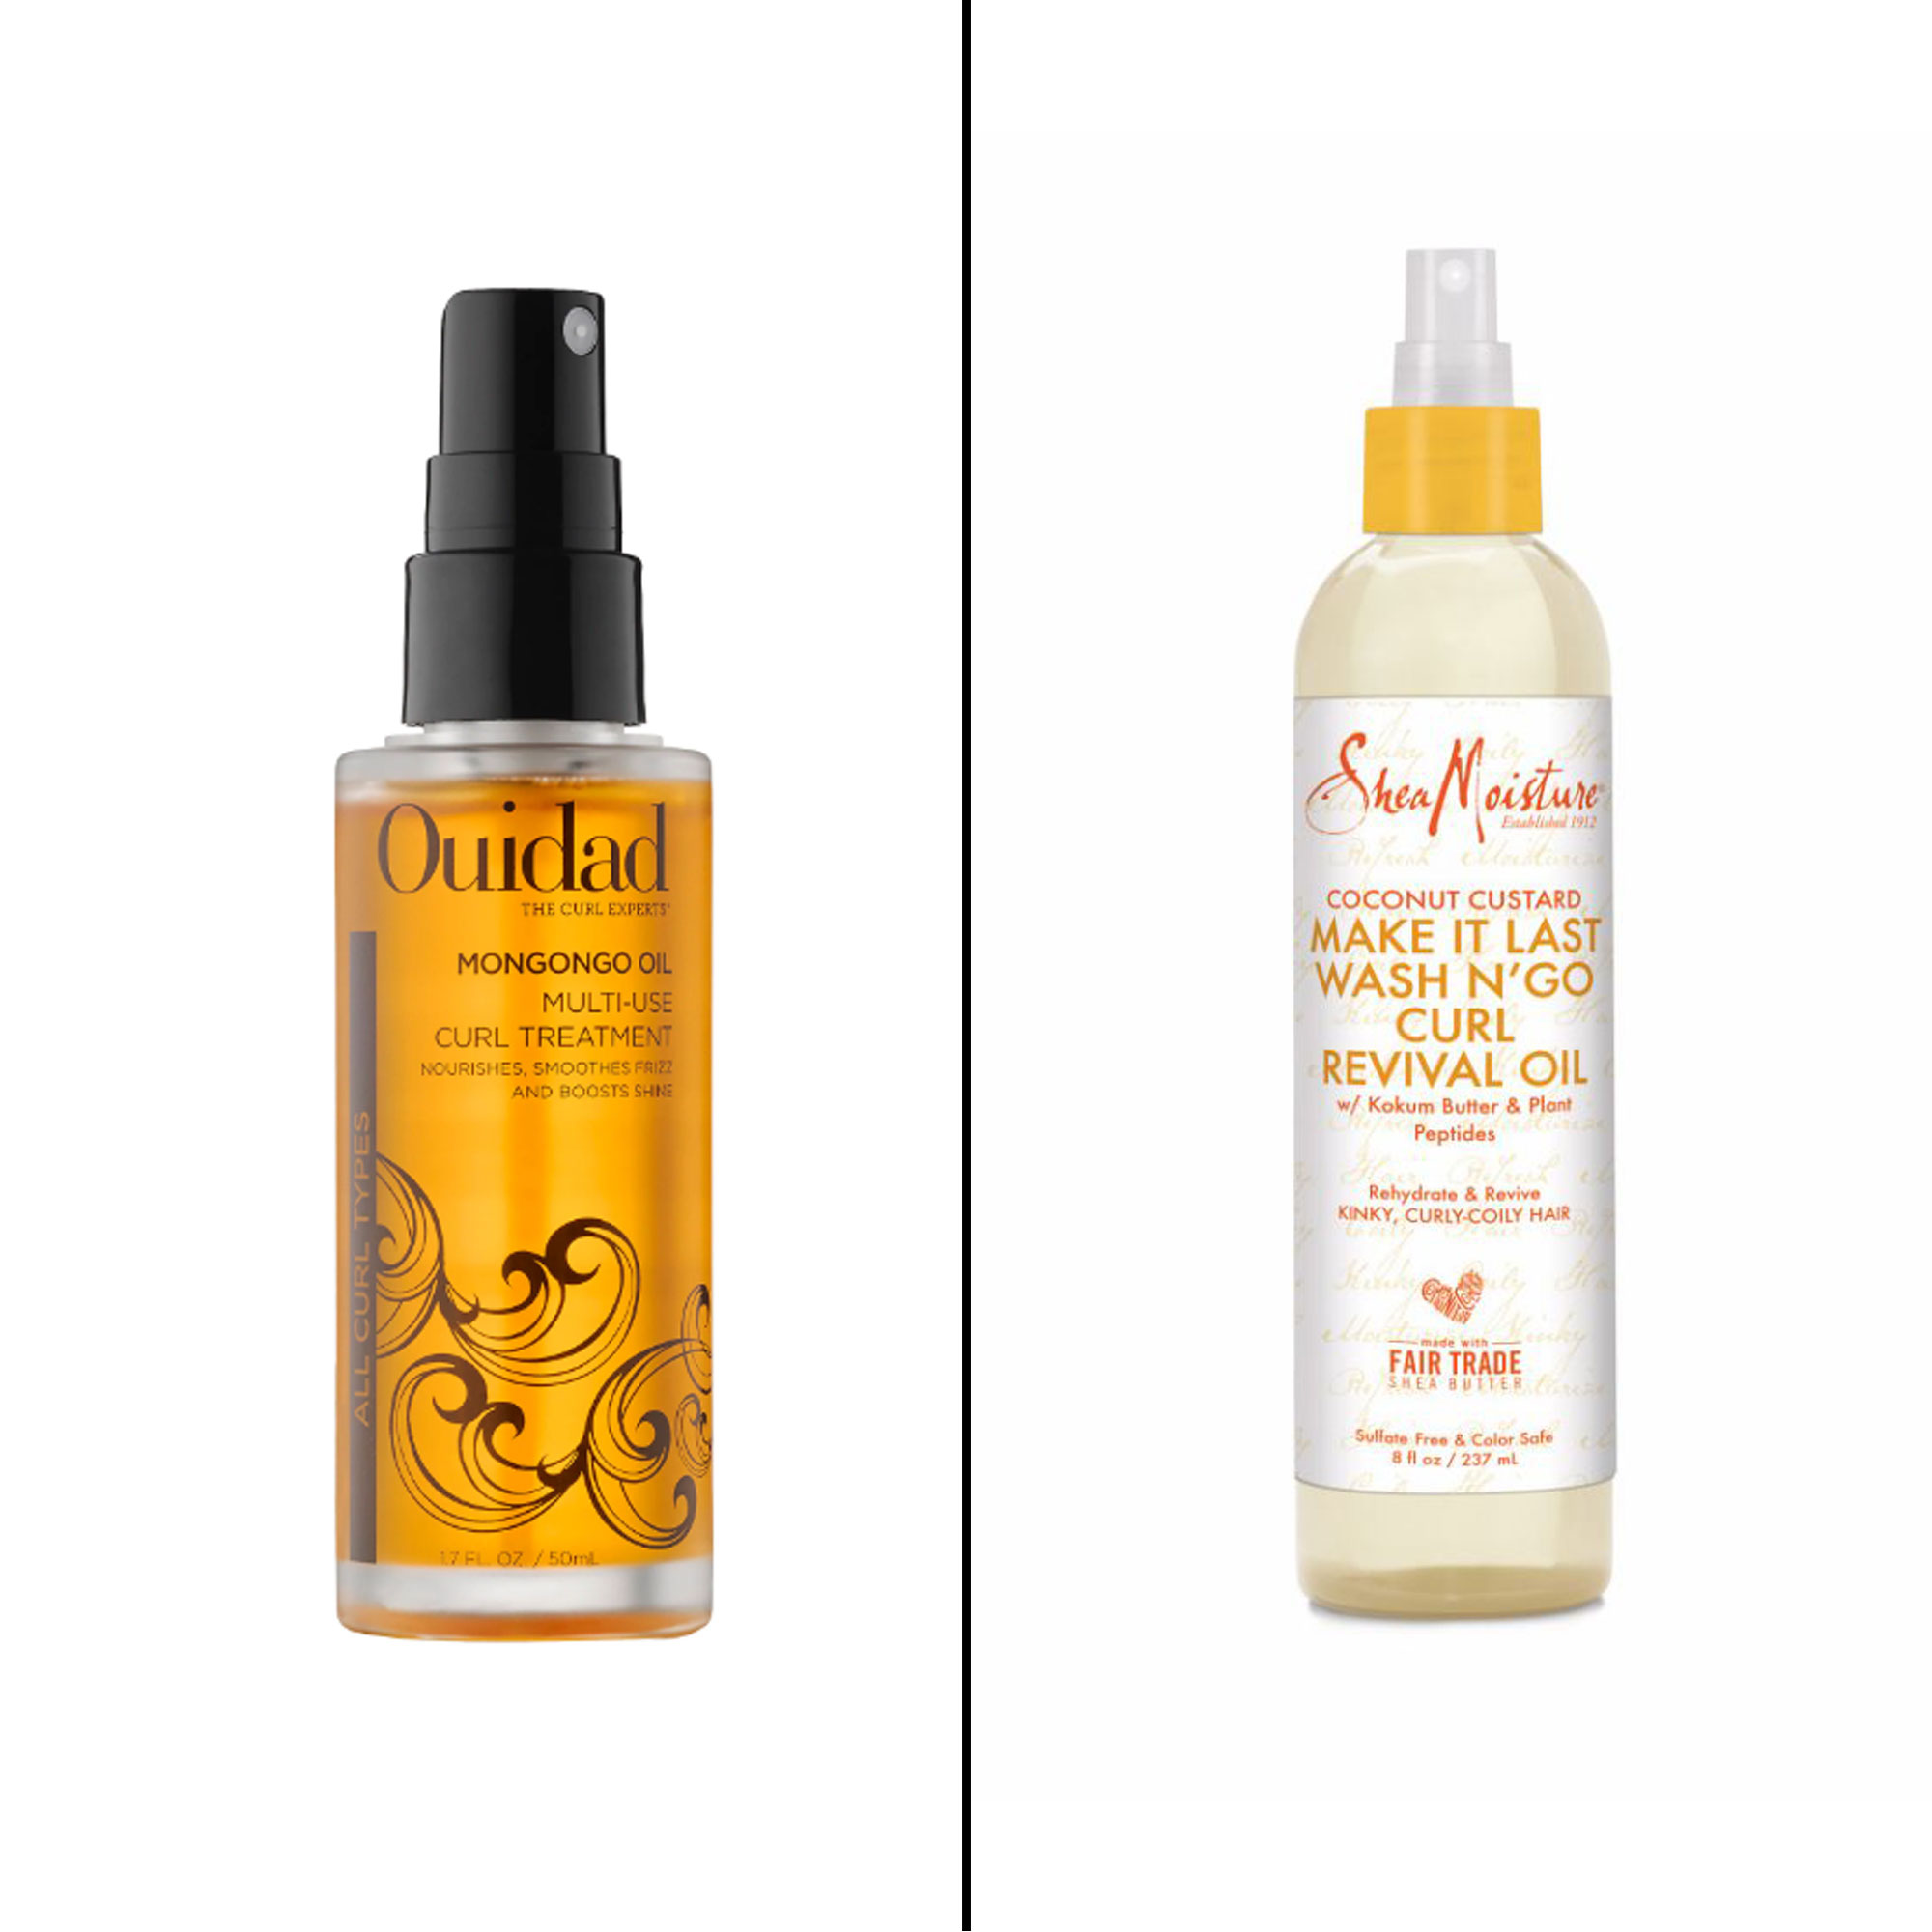 Splurge vs. Save: Salon-Worthy Hair Treatments For Every Type of Need - Splurge: Ouidad Mongongo Oil Mult-Use Curl Treatment This nourishing elixir absorbs quickly so not to be greasy when restoring luster to limp curls. $38, ouidad.com Save: SheaMoisture Coconut Custard Make It Last Wash N' Go Curl Revival Oil Thanks to coconut oil, kokum butter and plant peptides this spray revitalizes curls for stunning definition.